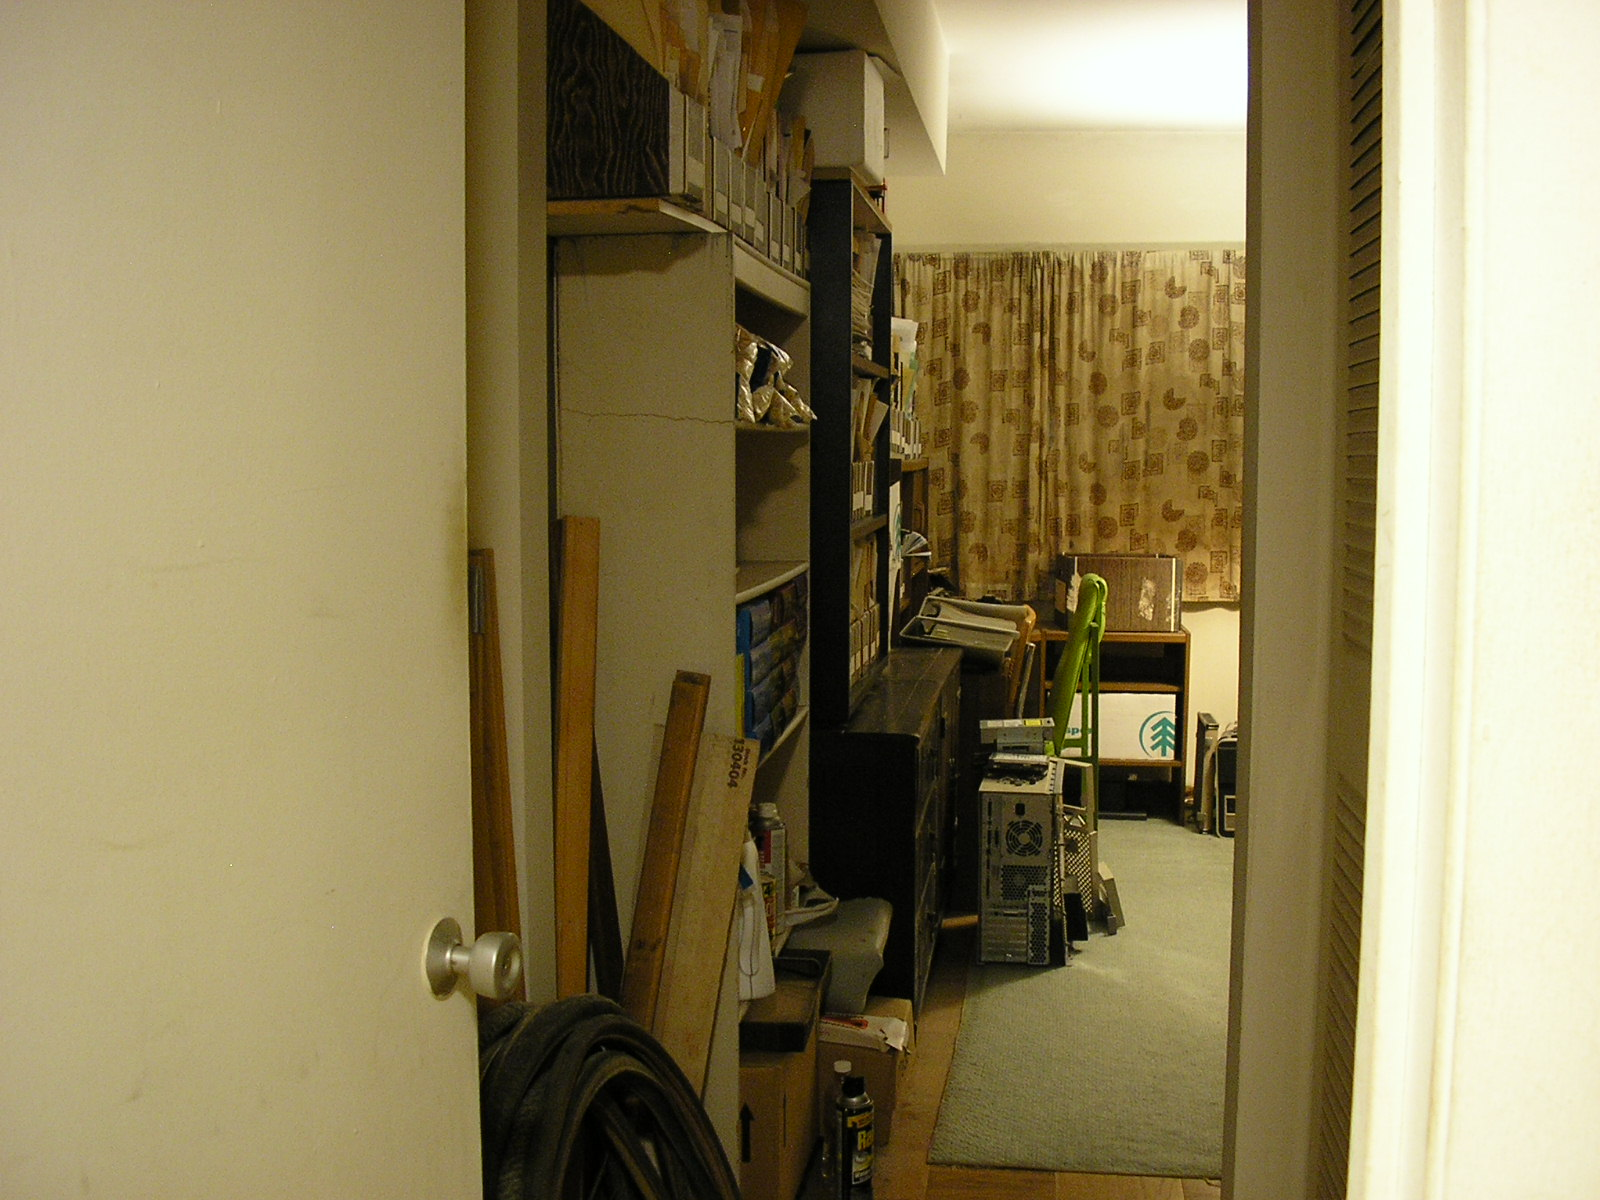 Pictures of Keith Lynch's old apartment